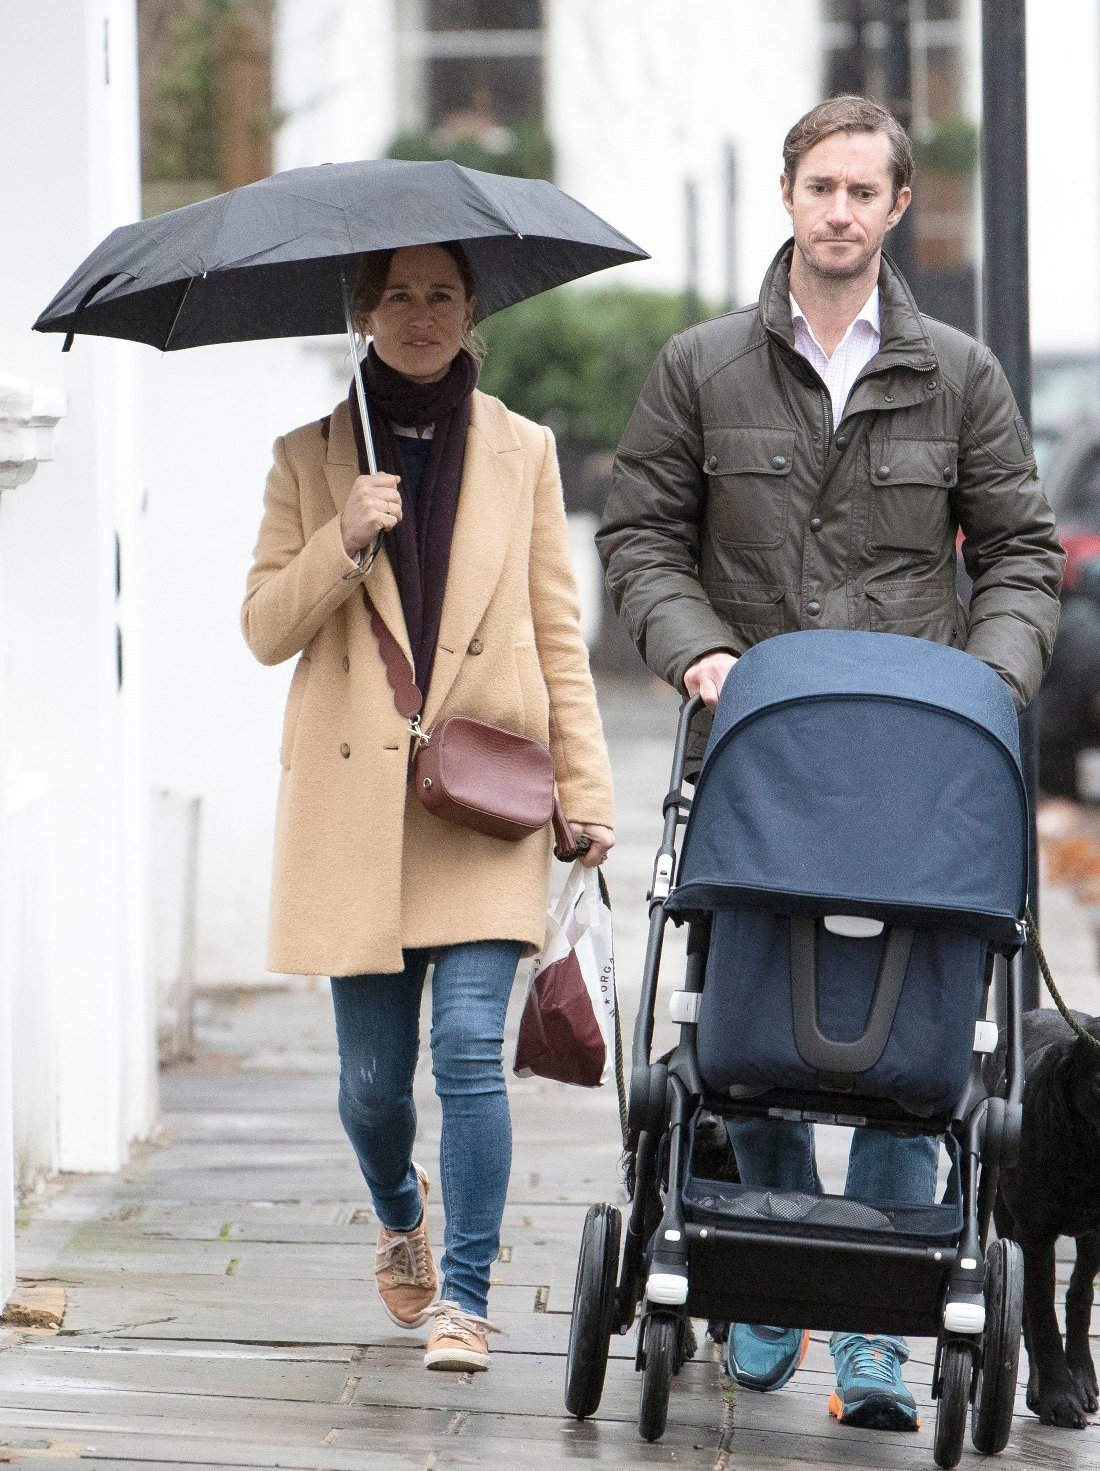 BGUK_1421243 - LONDON, UNITED KINGDOM  - *EXCLUSIVE*  - WEB MUST CALL FOR PRICING - Kate Middleton's Sister Pippa Middleton pictured getting caught up in the rainy weather as she's pictured out and about with husband James Matthews and their newborn baby son Arthur Matthews in London.  Pictured: pippa middleton and james matthews    *UK Clients - Pictures Containing Children Please Pixelate Face Prior To Publication*, Image: 399655900, License: Rights-managed, Restrictions: , Model Release: no, Credit line: Profimedia, Xposurephotos